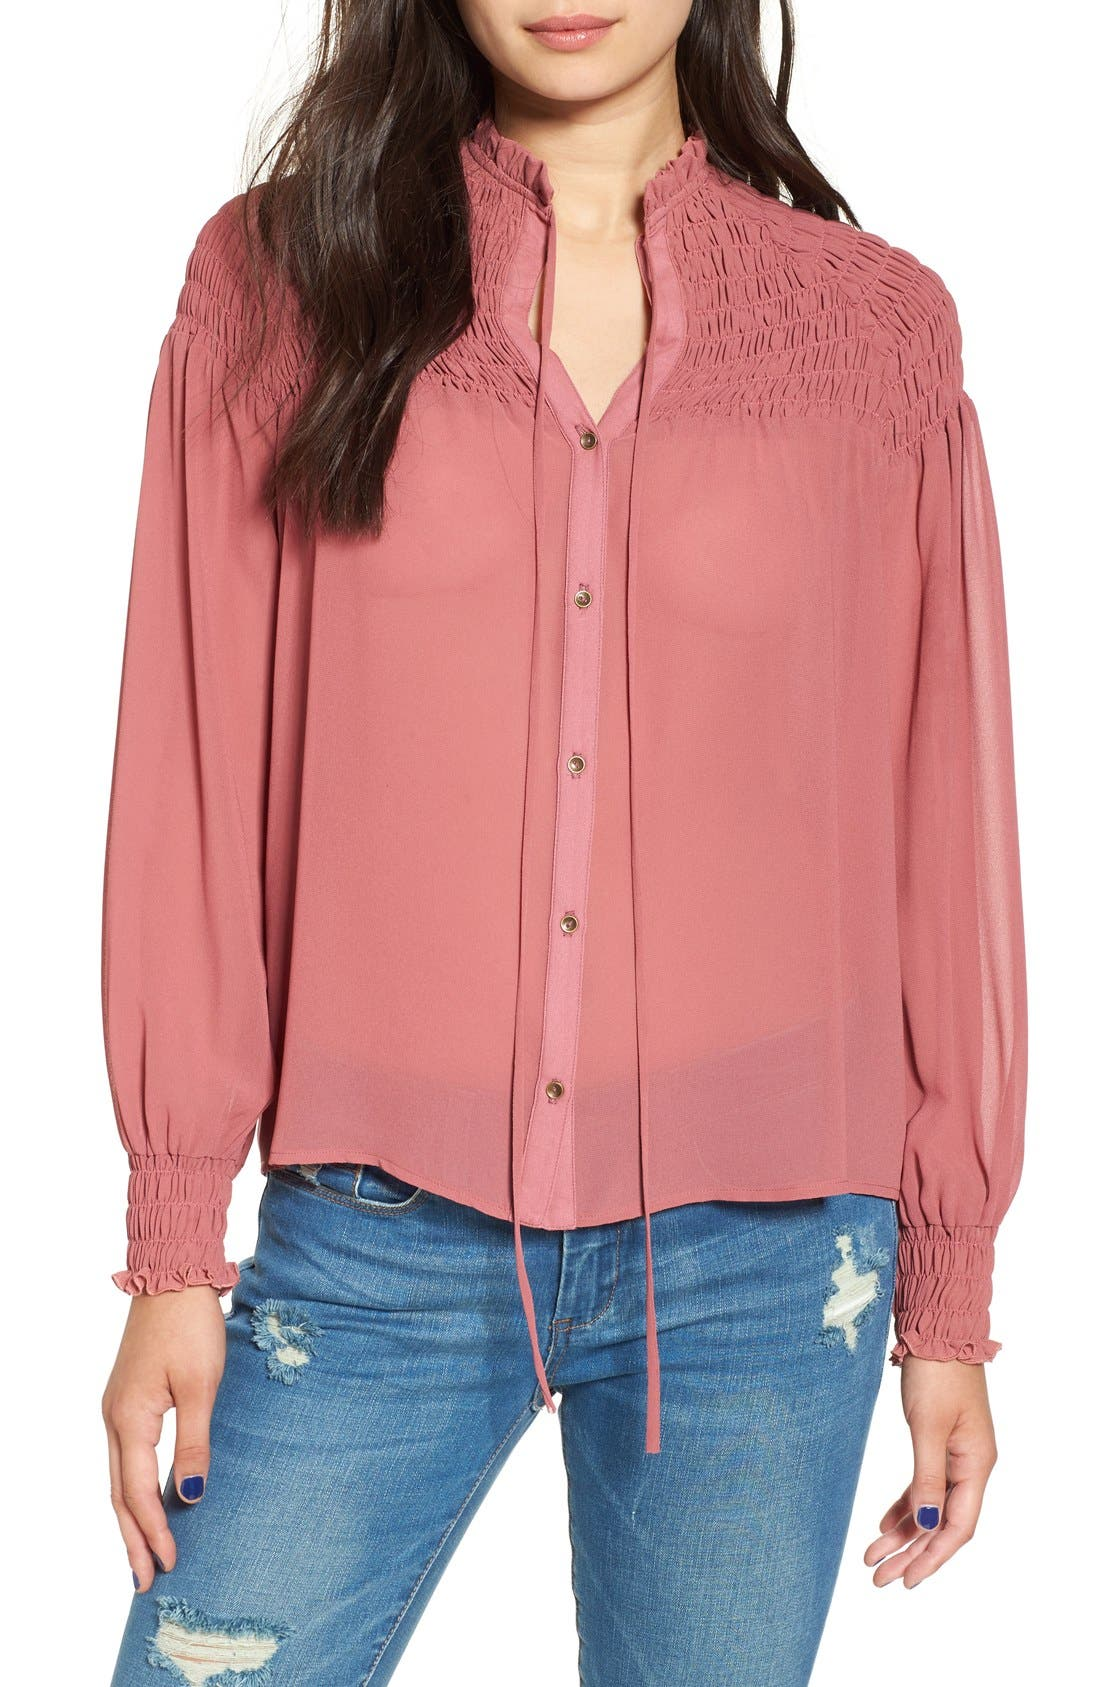 Alternate Image 1 Selected - WAYF 'Russell' Chiffon Blouse